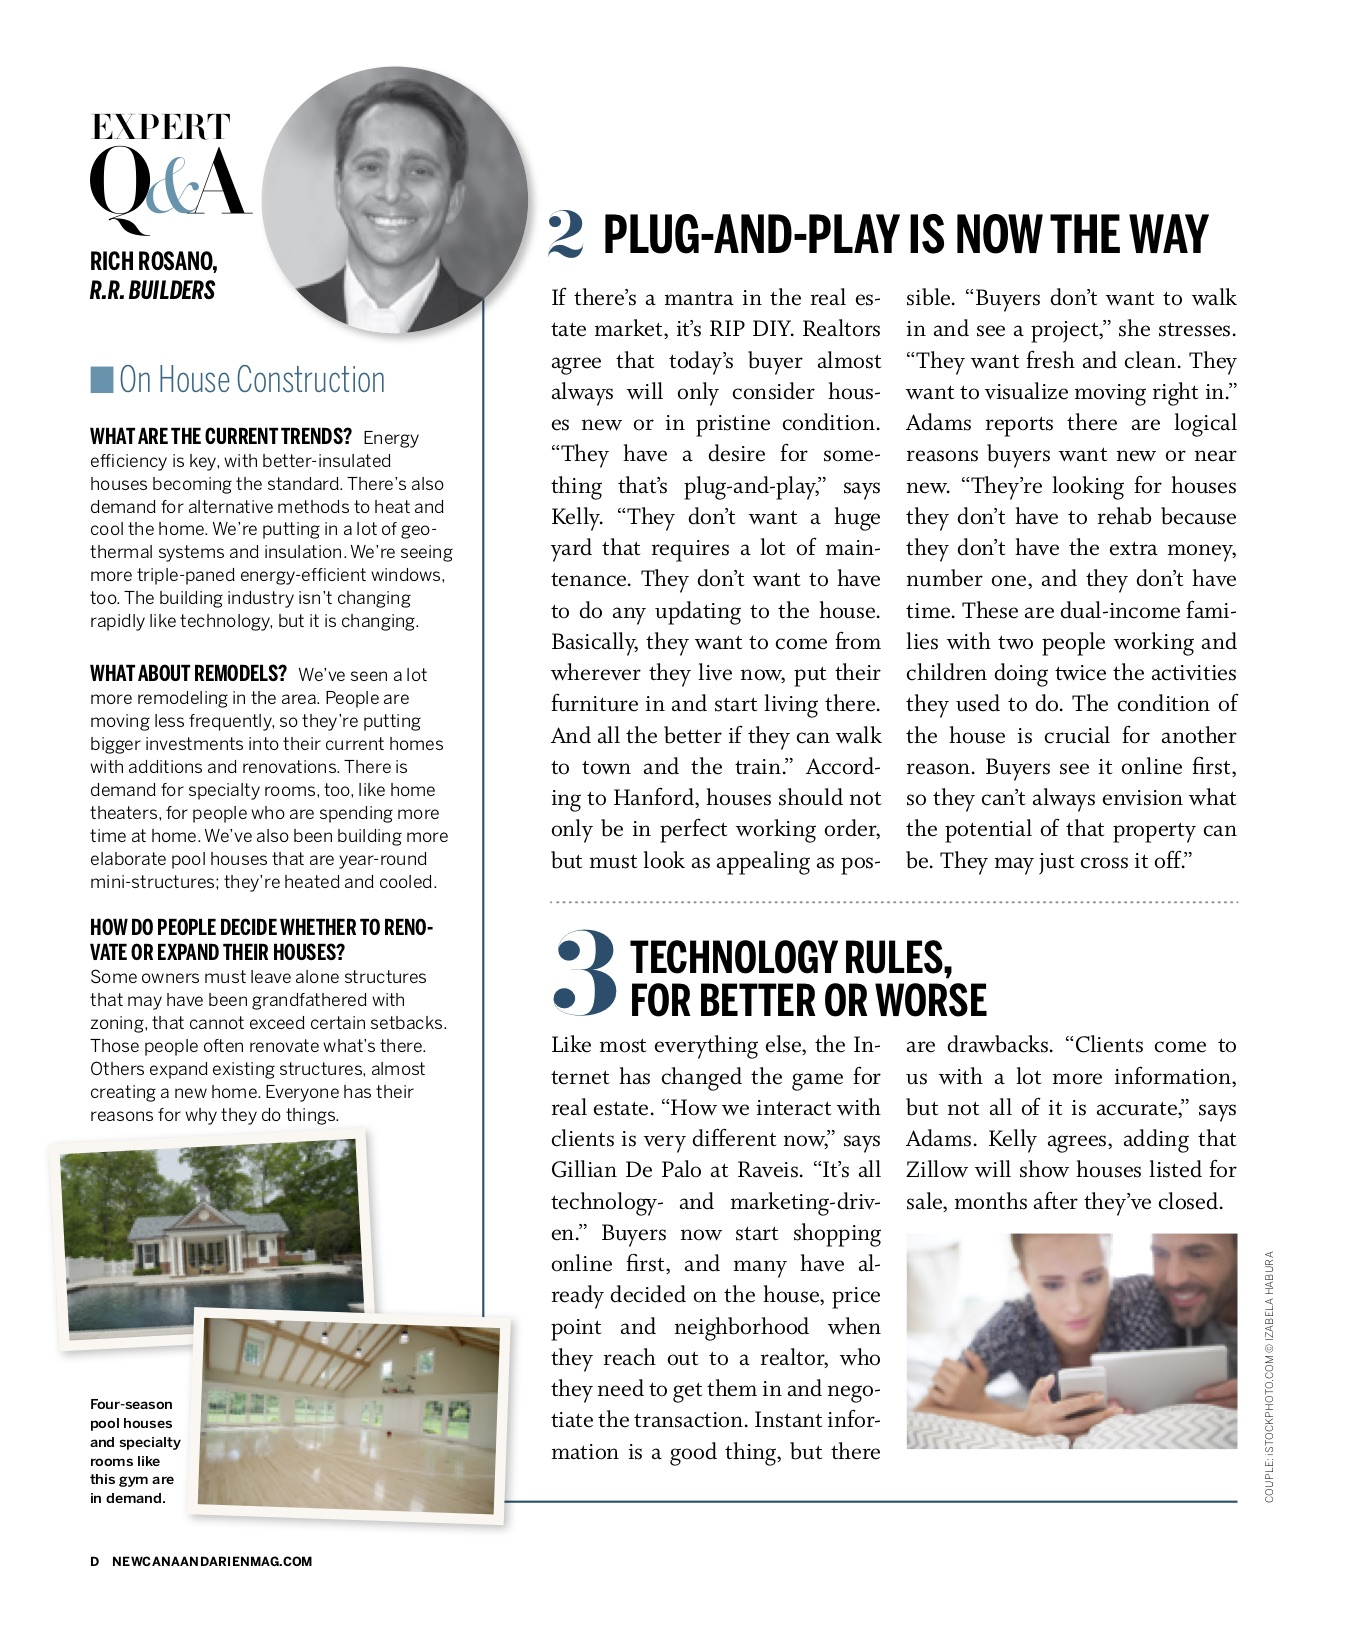 New Canaan magazine real estate story 3.jpg